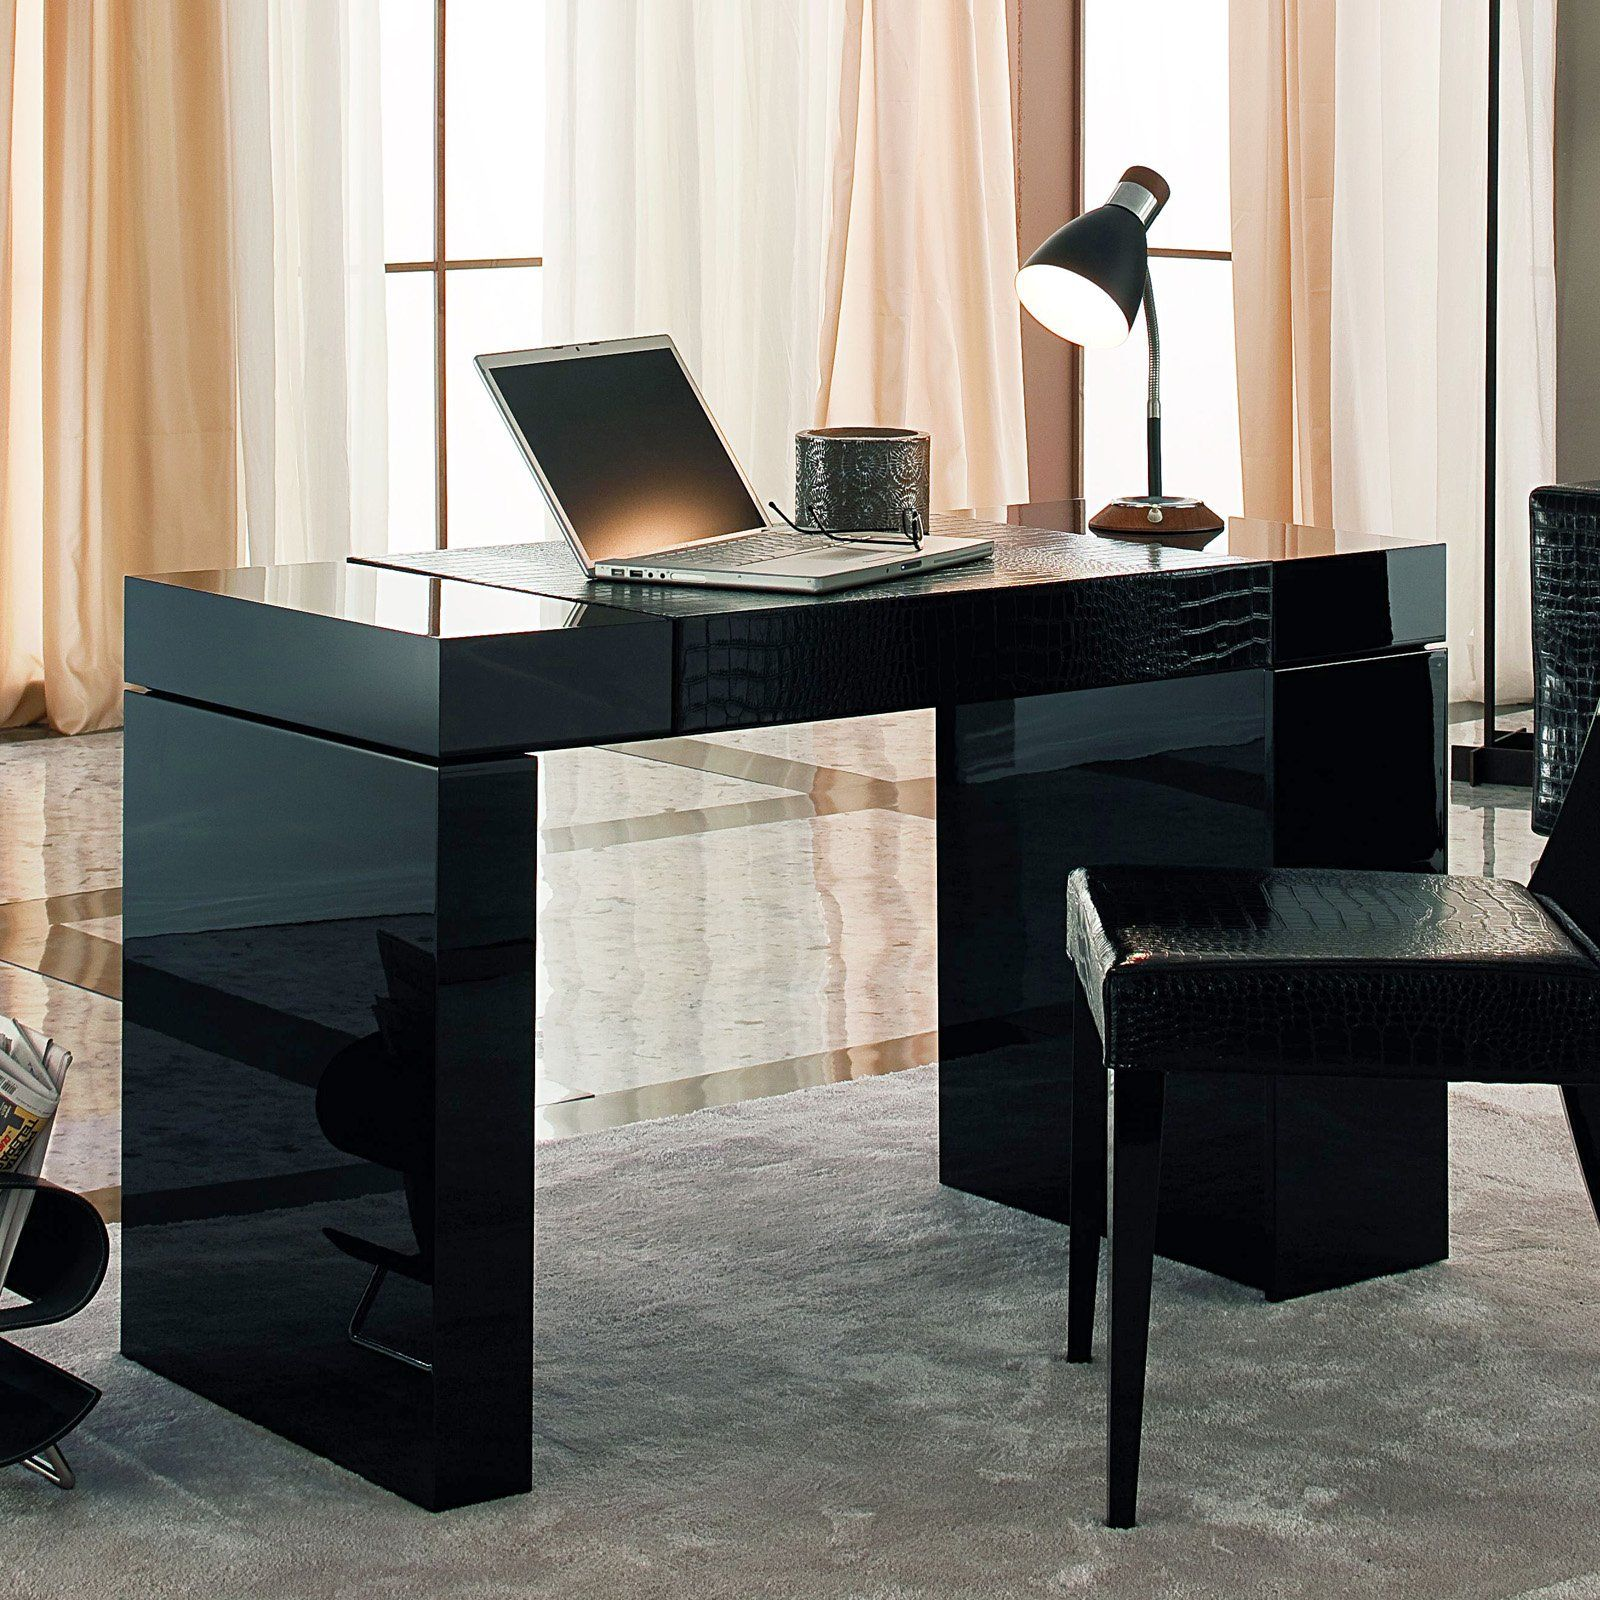 interesting home office desks design black wood. Interesting Home Office Desks Design Black Wood. Nightfly Writing/laptop Desk - $2589.99 Wood Kawatouya.co Is A Great Content!!!